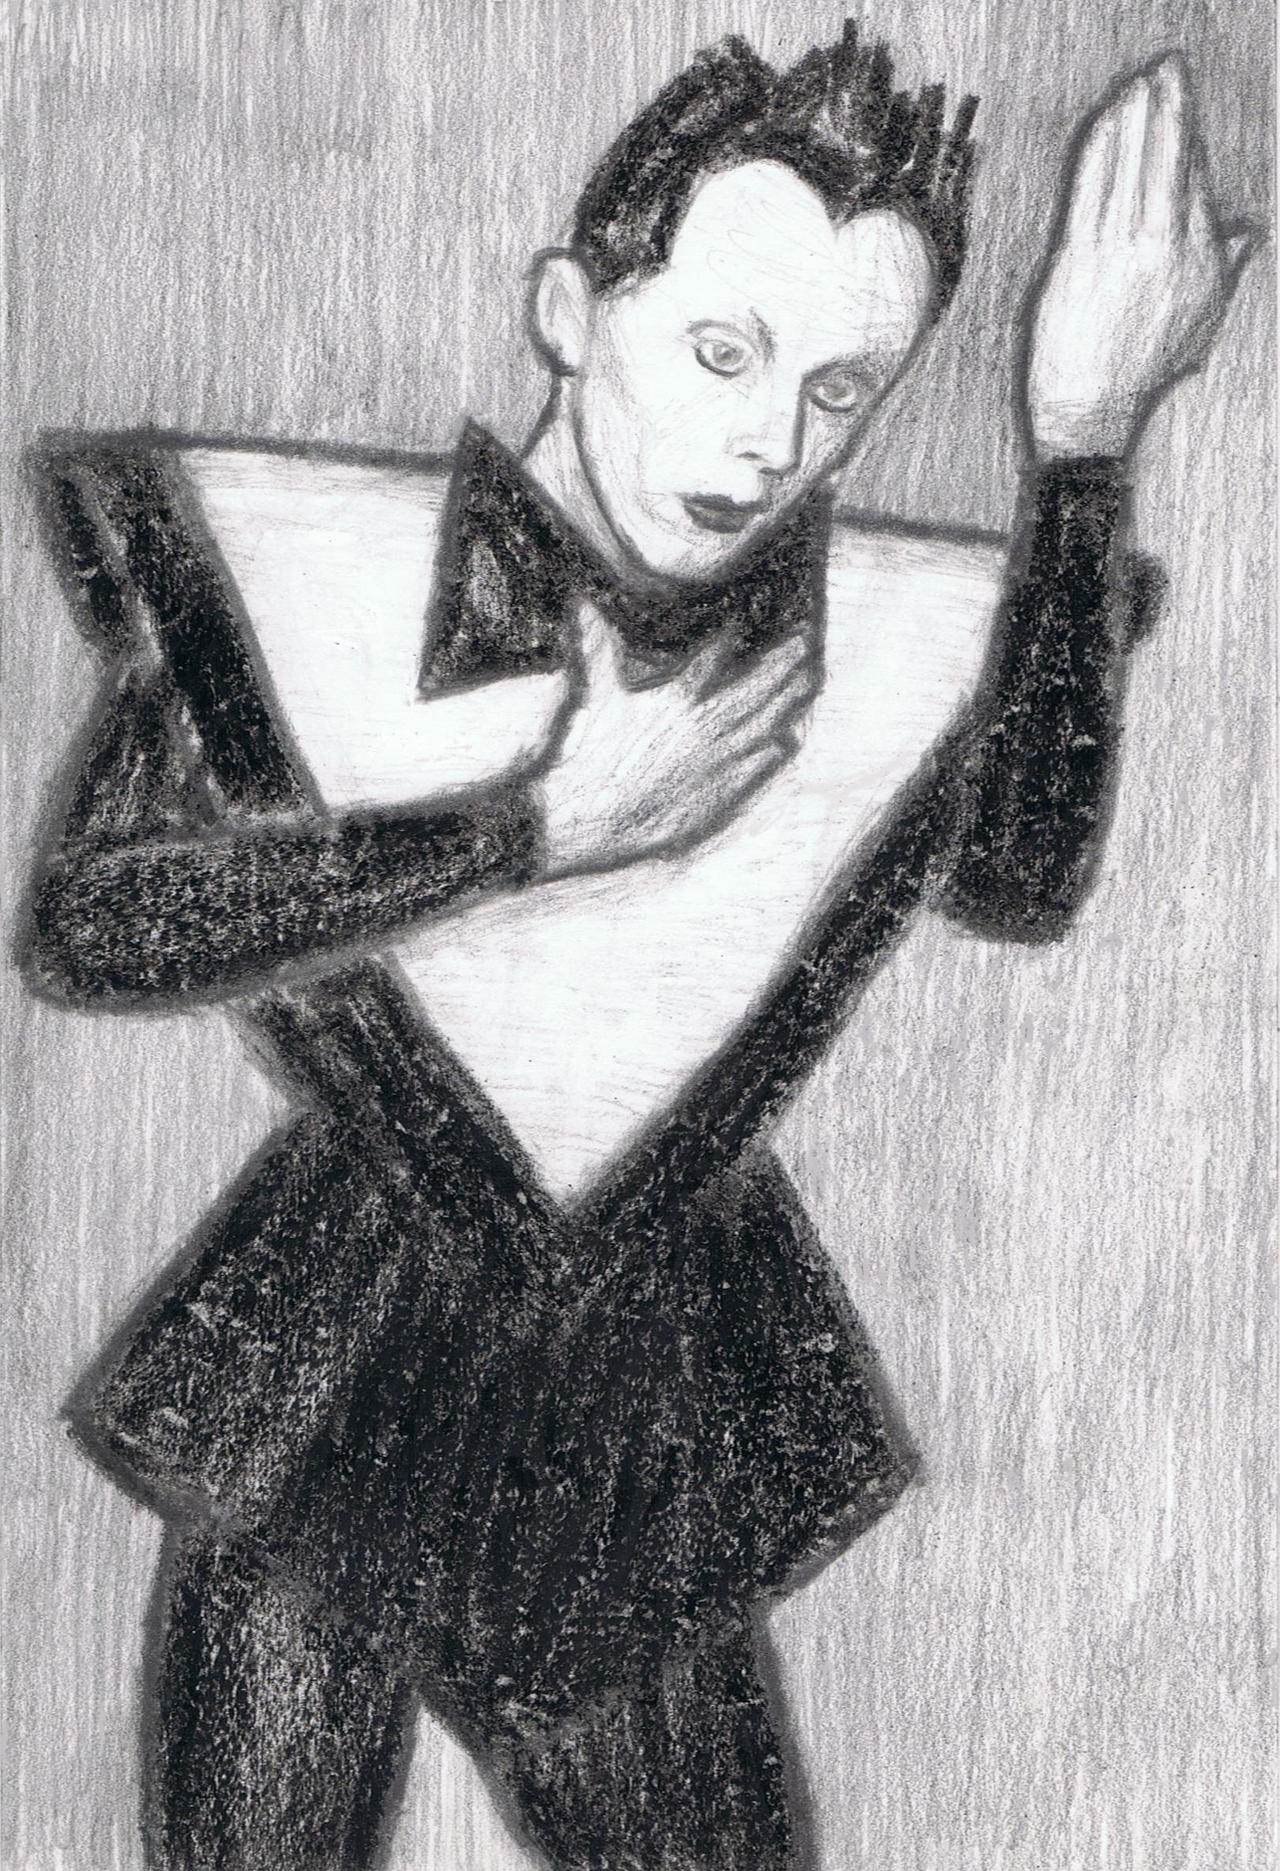 Klaus Nomi doing Heroes by gagambo